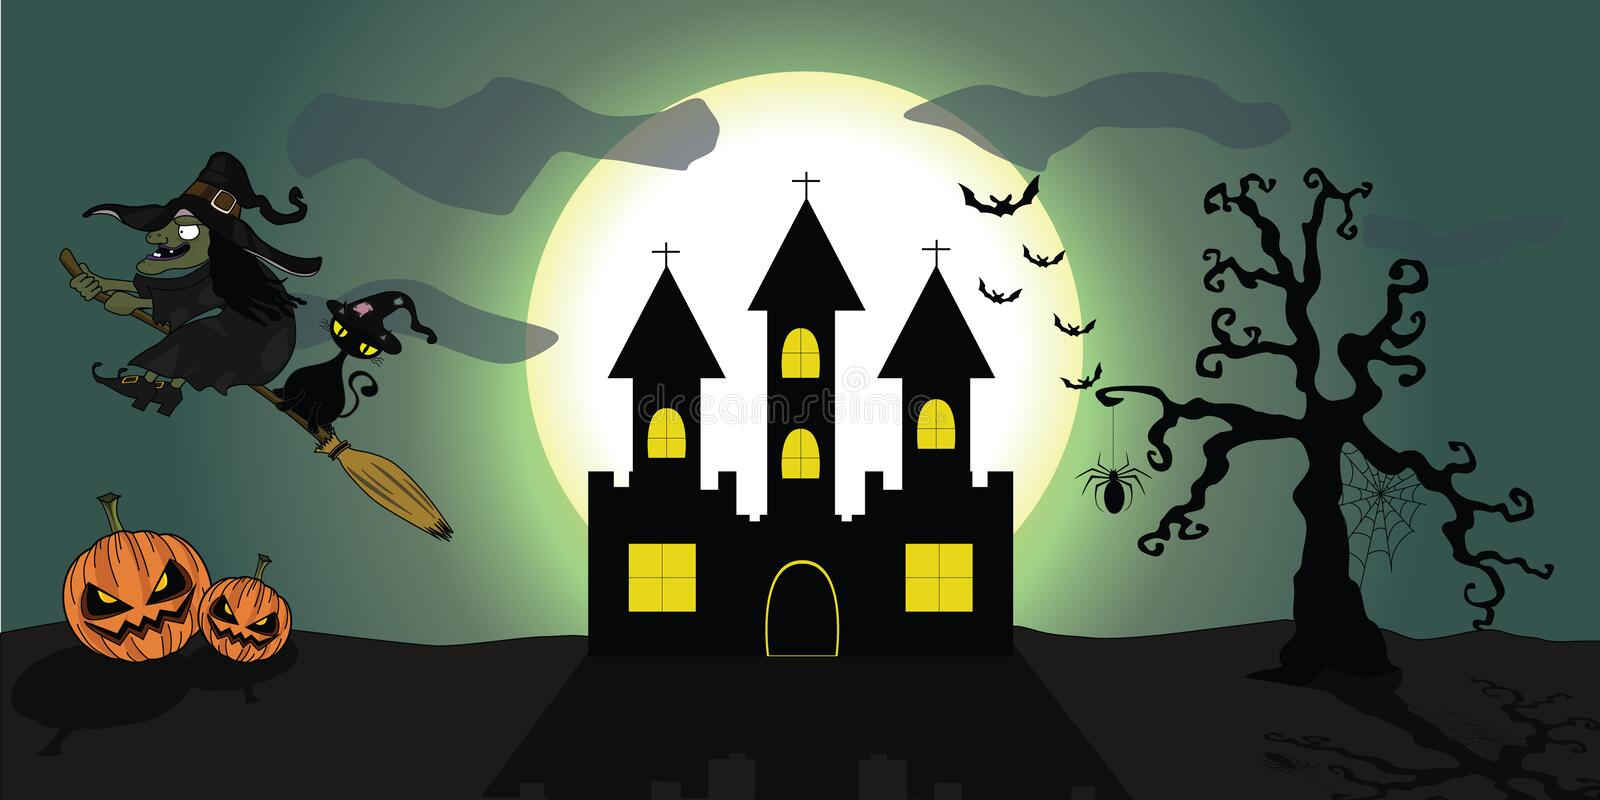 Halloween Background witch & cat royalty free stock photo